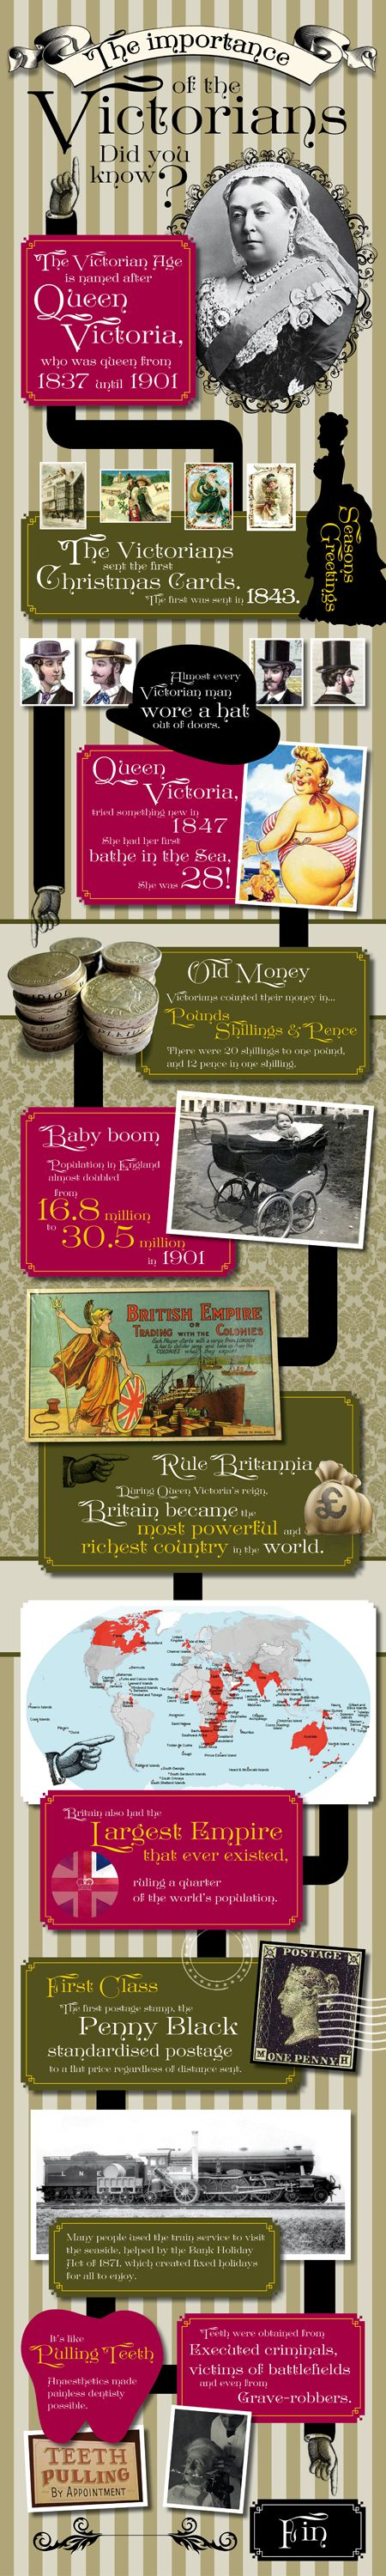 Victorian History Infographic Victorian History Infographic